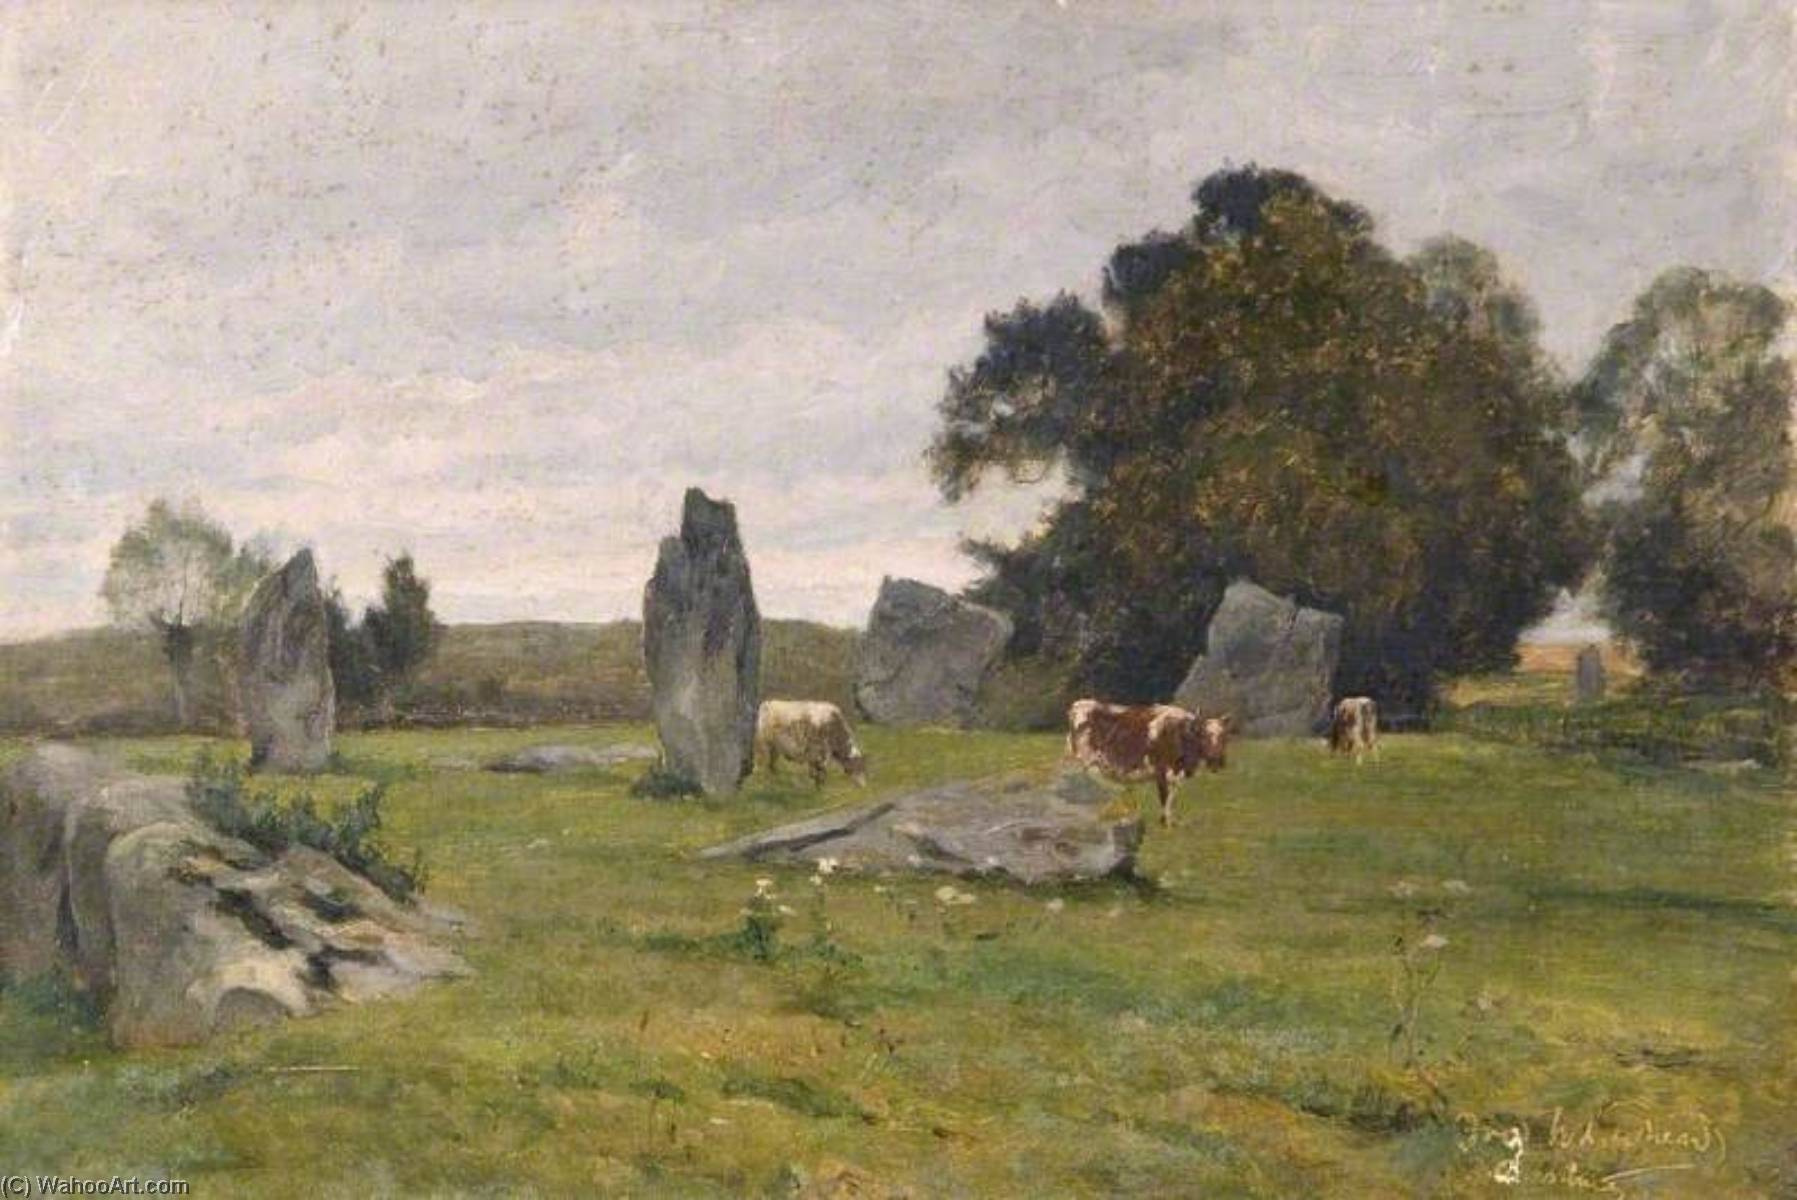 Avebury, 1925 by Frederick William Newton Whitehead | Art Reproductions Frederick William Newton Whitehead | WahooArt.com